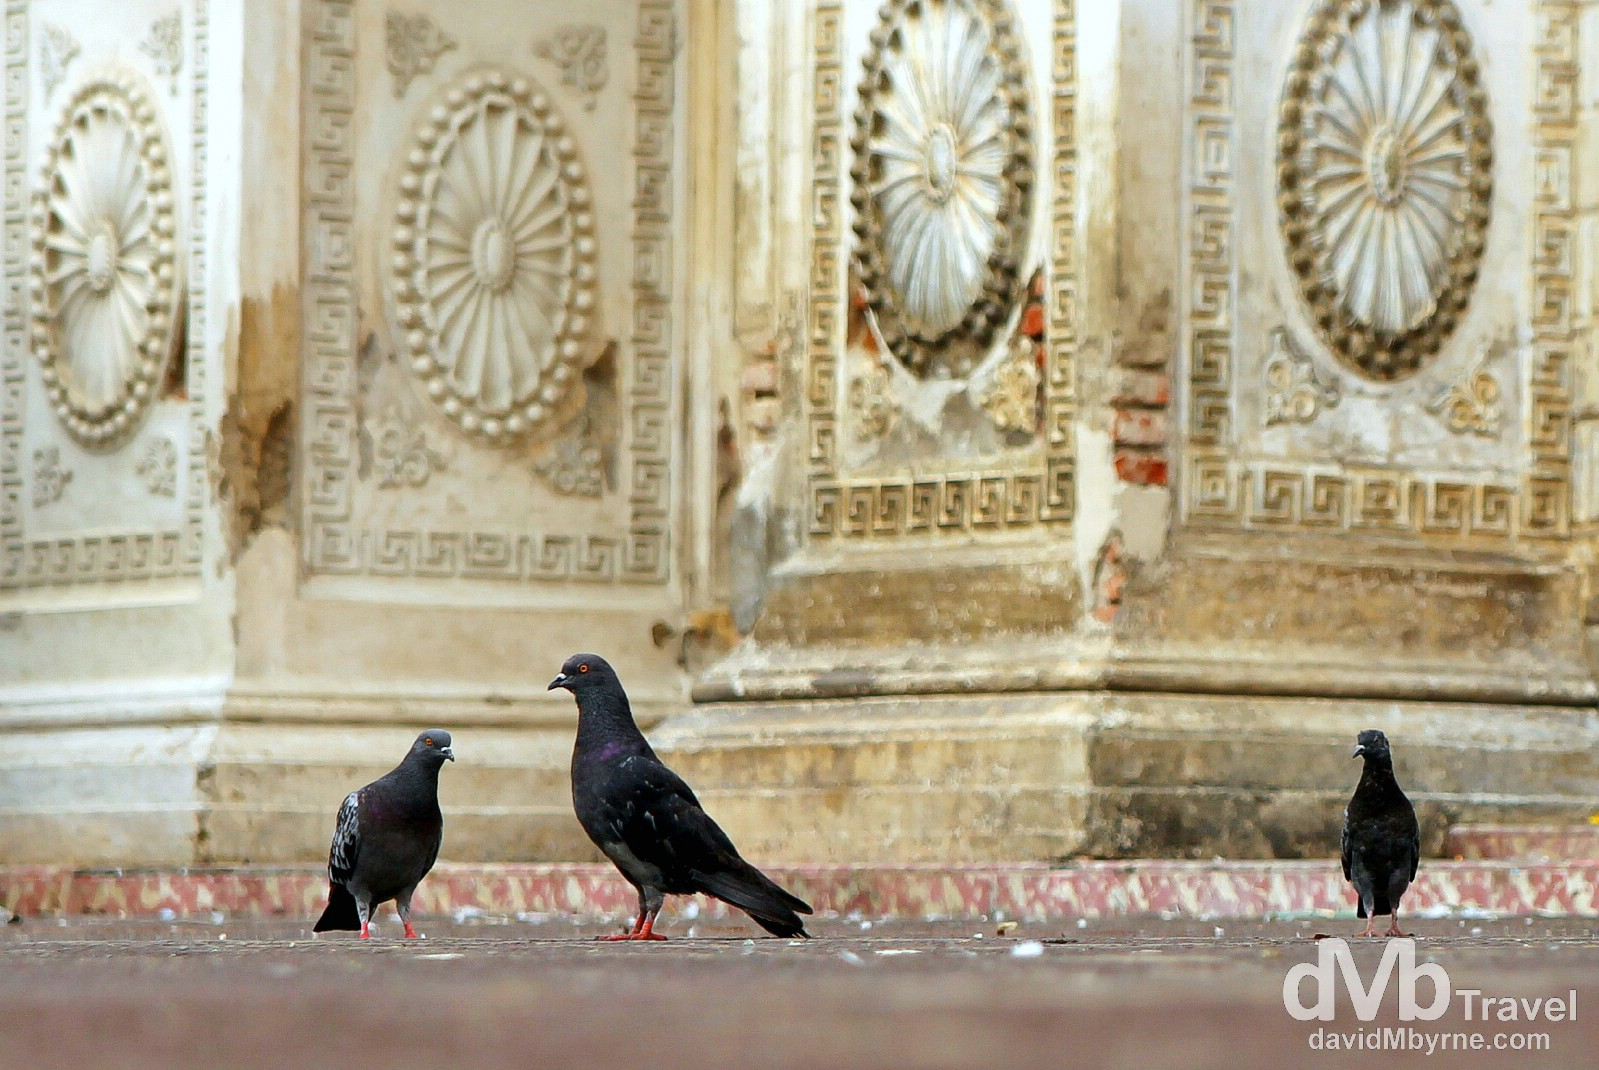 Pigeons outside Santa Ana Cathedral, Santa Ana, Western El Salvador. May 27th 2013.